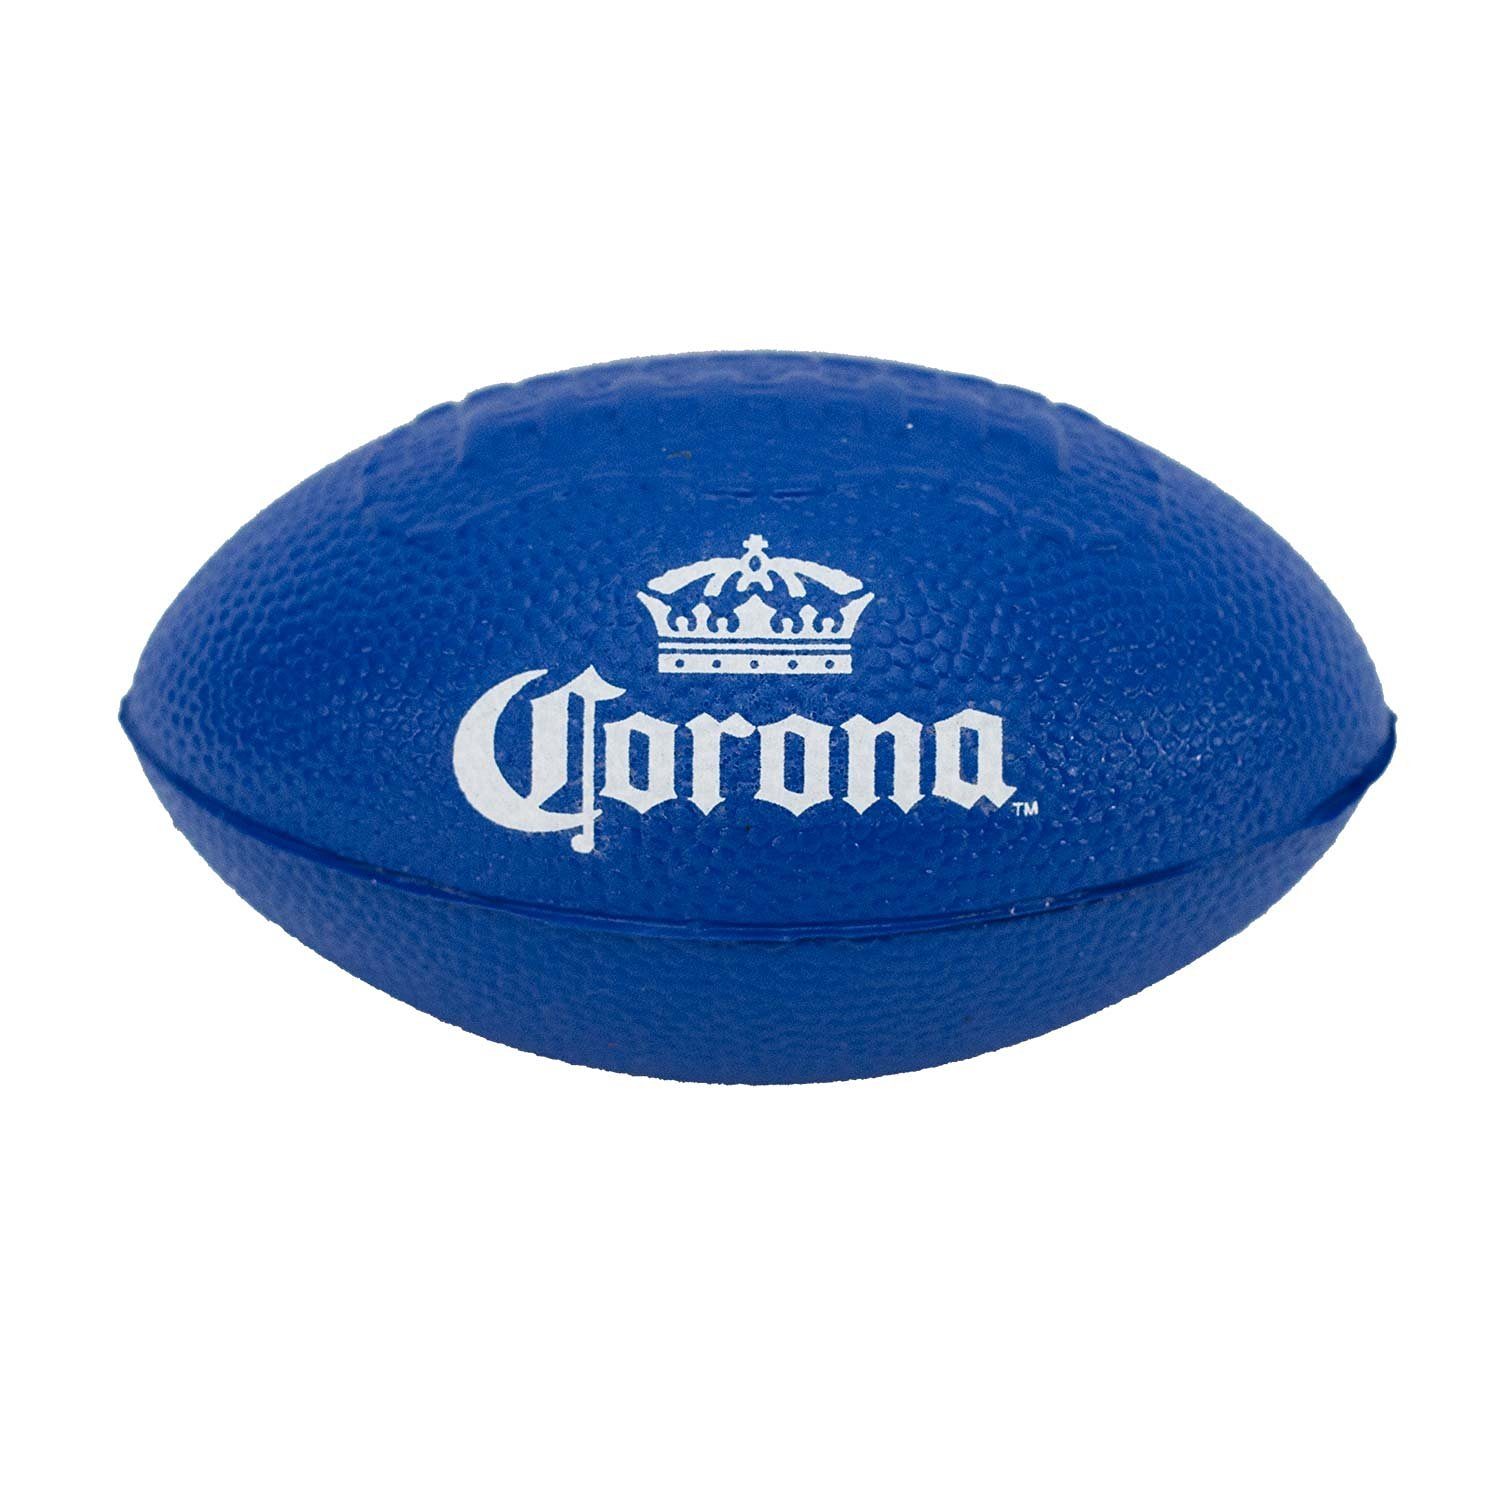 Cheap Corona Football Find Corona Football Deals On Line